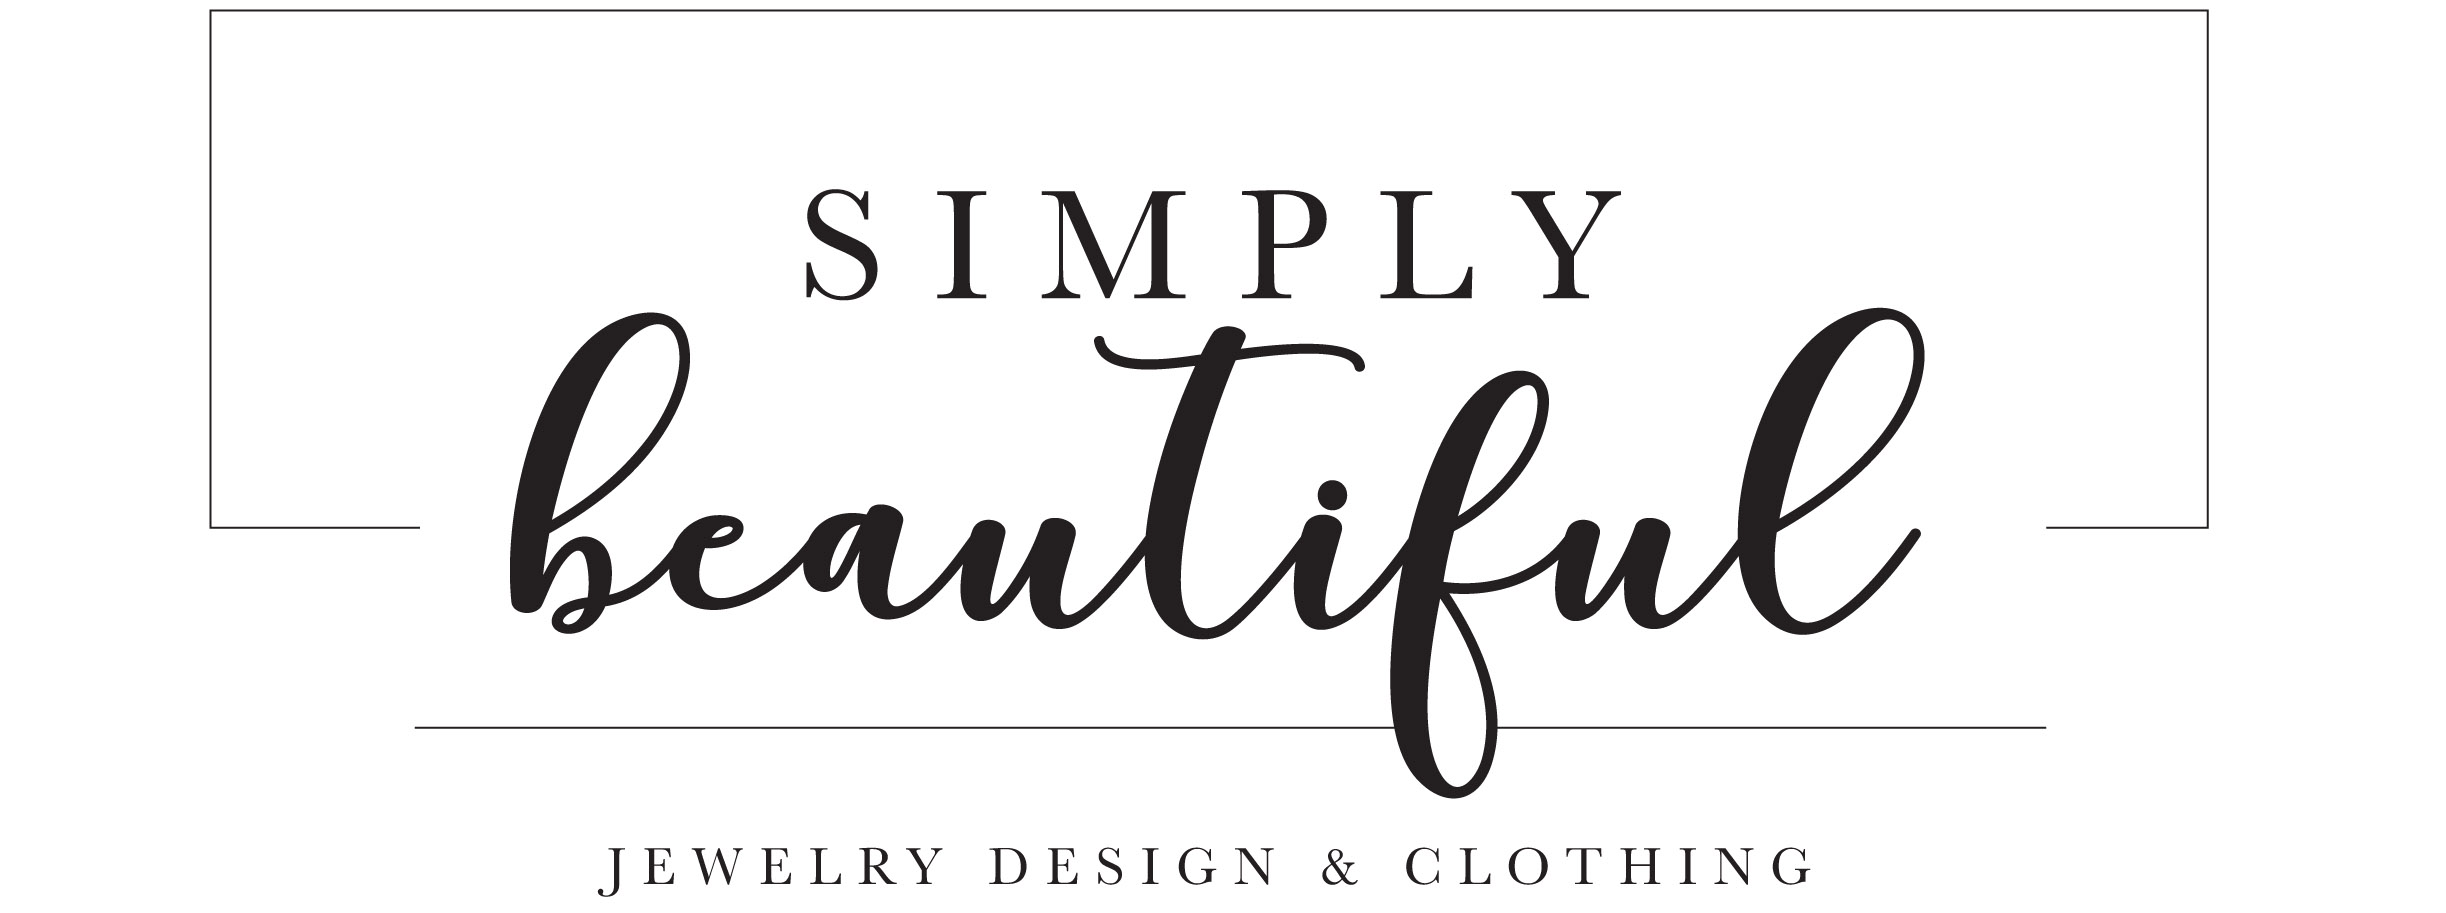 SIMPLY BEAUTIFUL JEWELRY DESIGN & CLOTHING logo